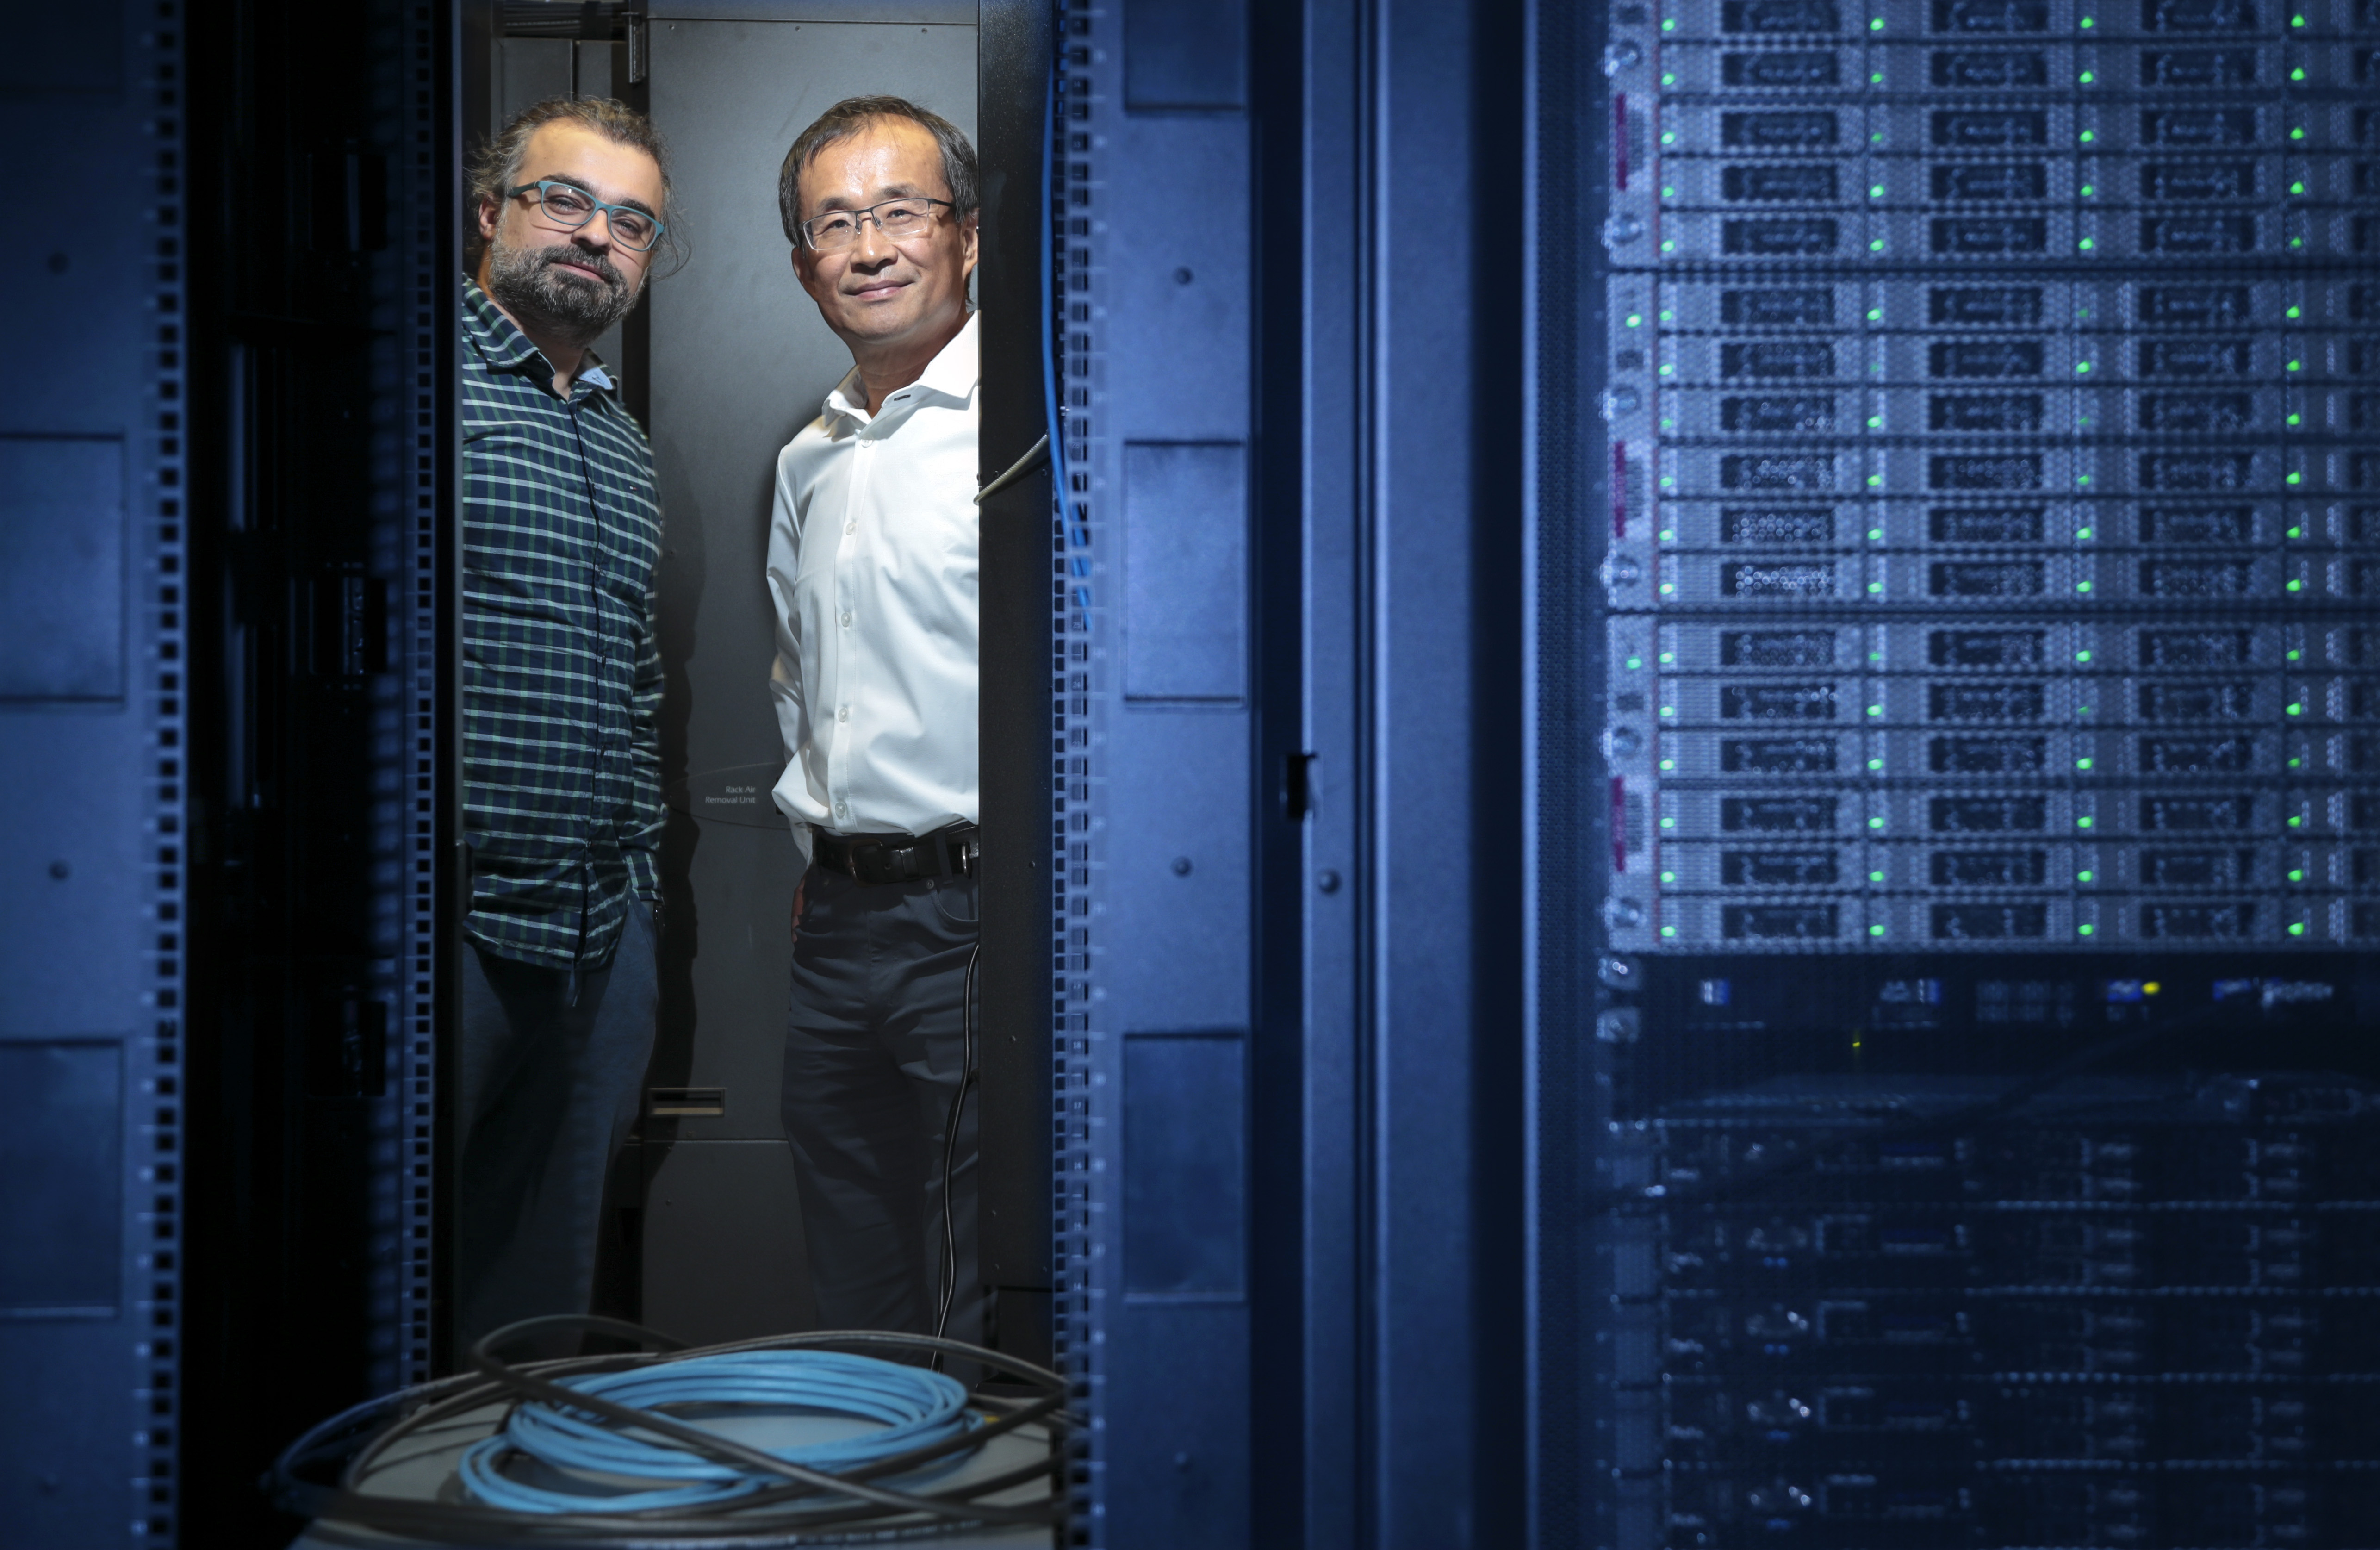 """Tolgahan Cakaloglu (left), a doctoral candidate in computer science, and Dr. Xiaowei Xu (right), professor of information science, received a $20,000 grant from Google for their project, """"Contextual Advanced Text Representation via Improved Deep Language Model by Utilizing Side Information."""" Photo by Ben Krain."""